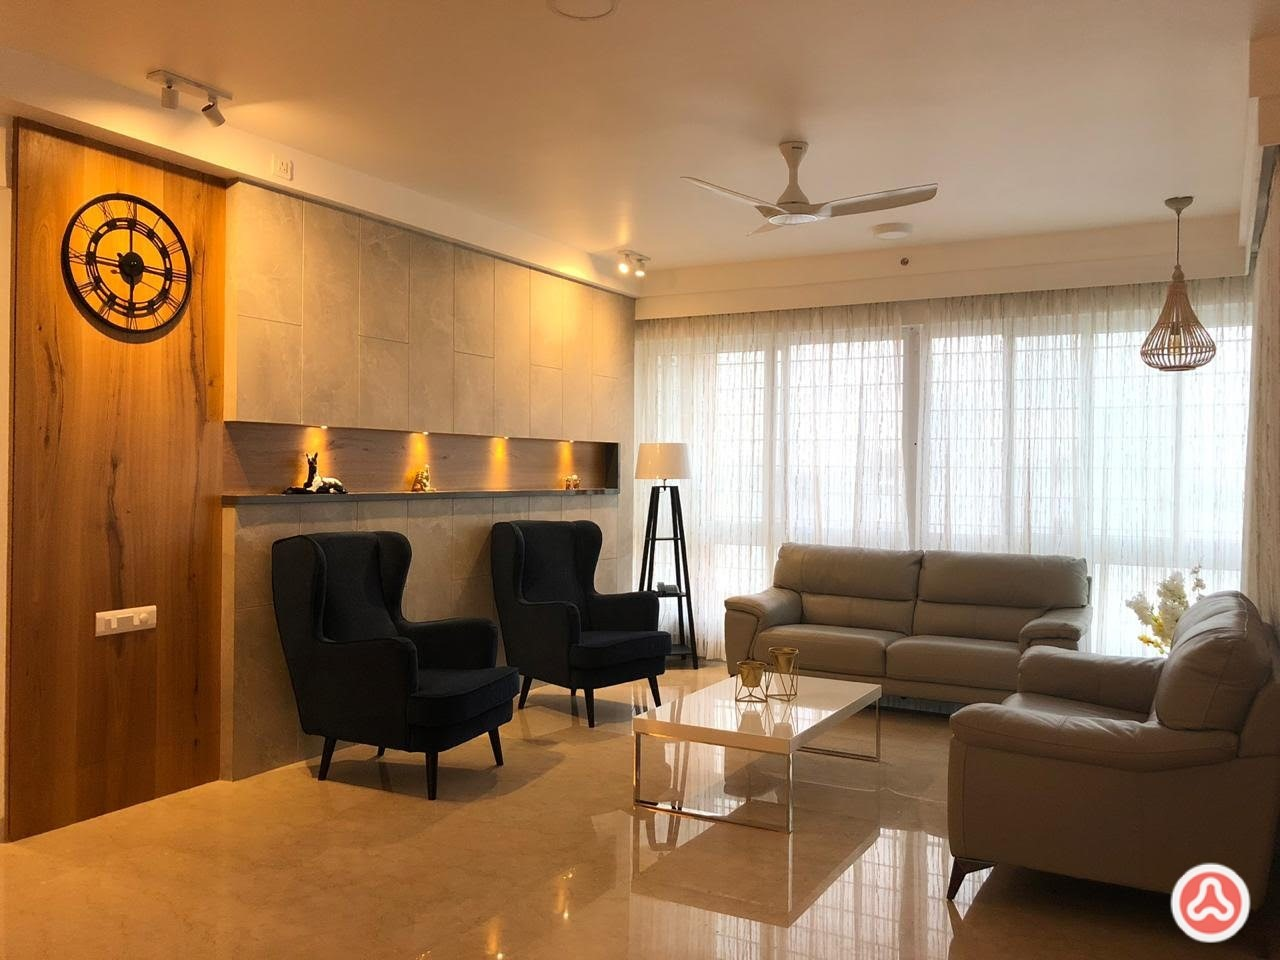 Living room wing wallpaper and highbacked seating